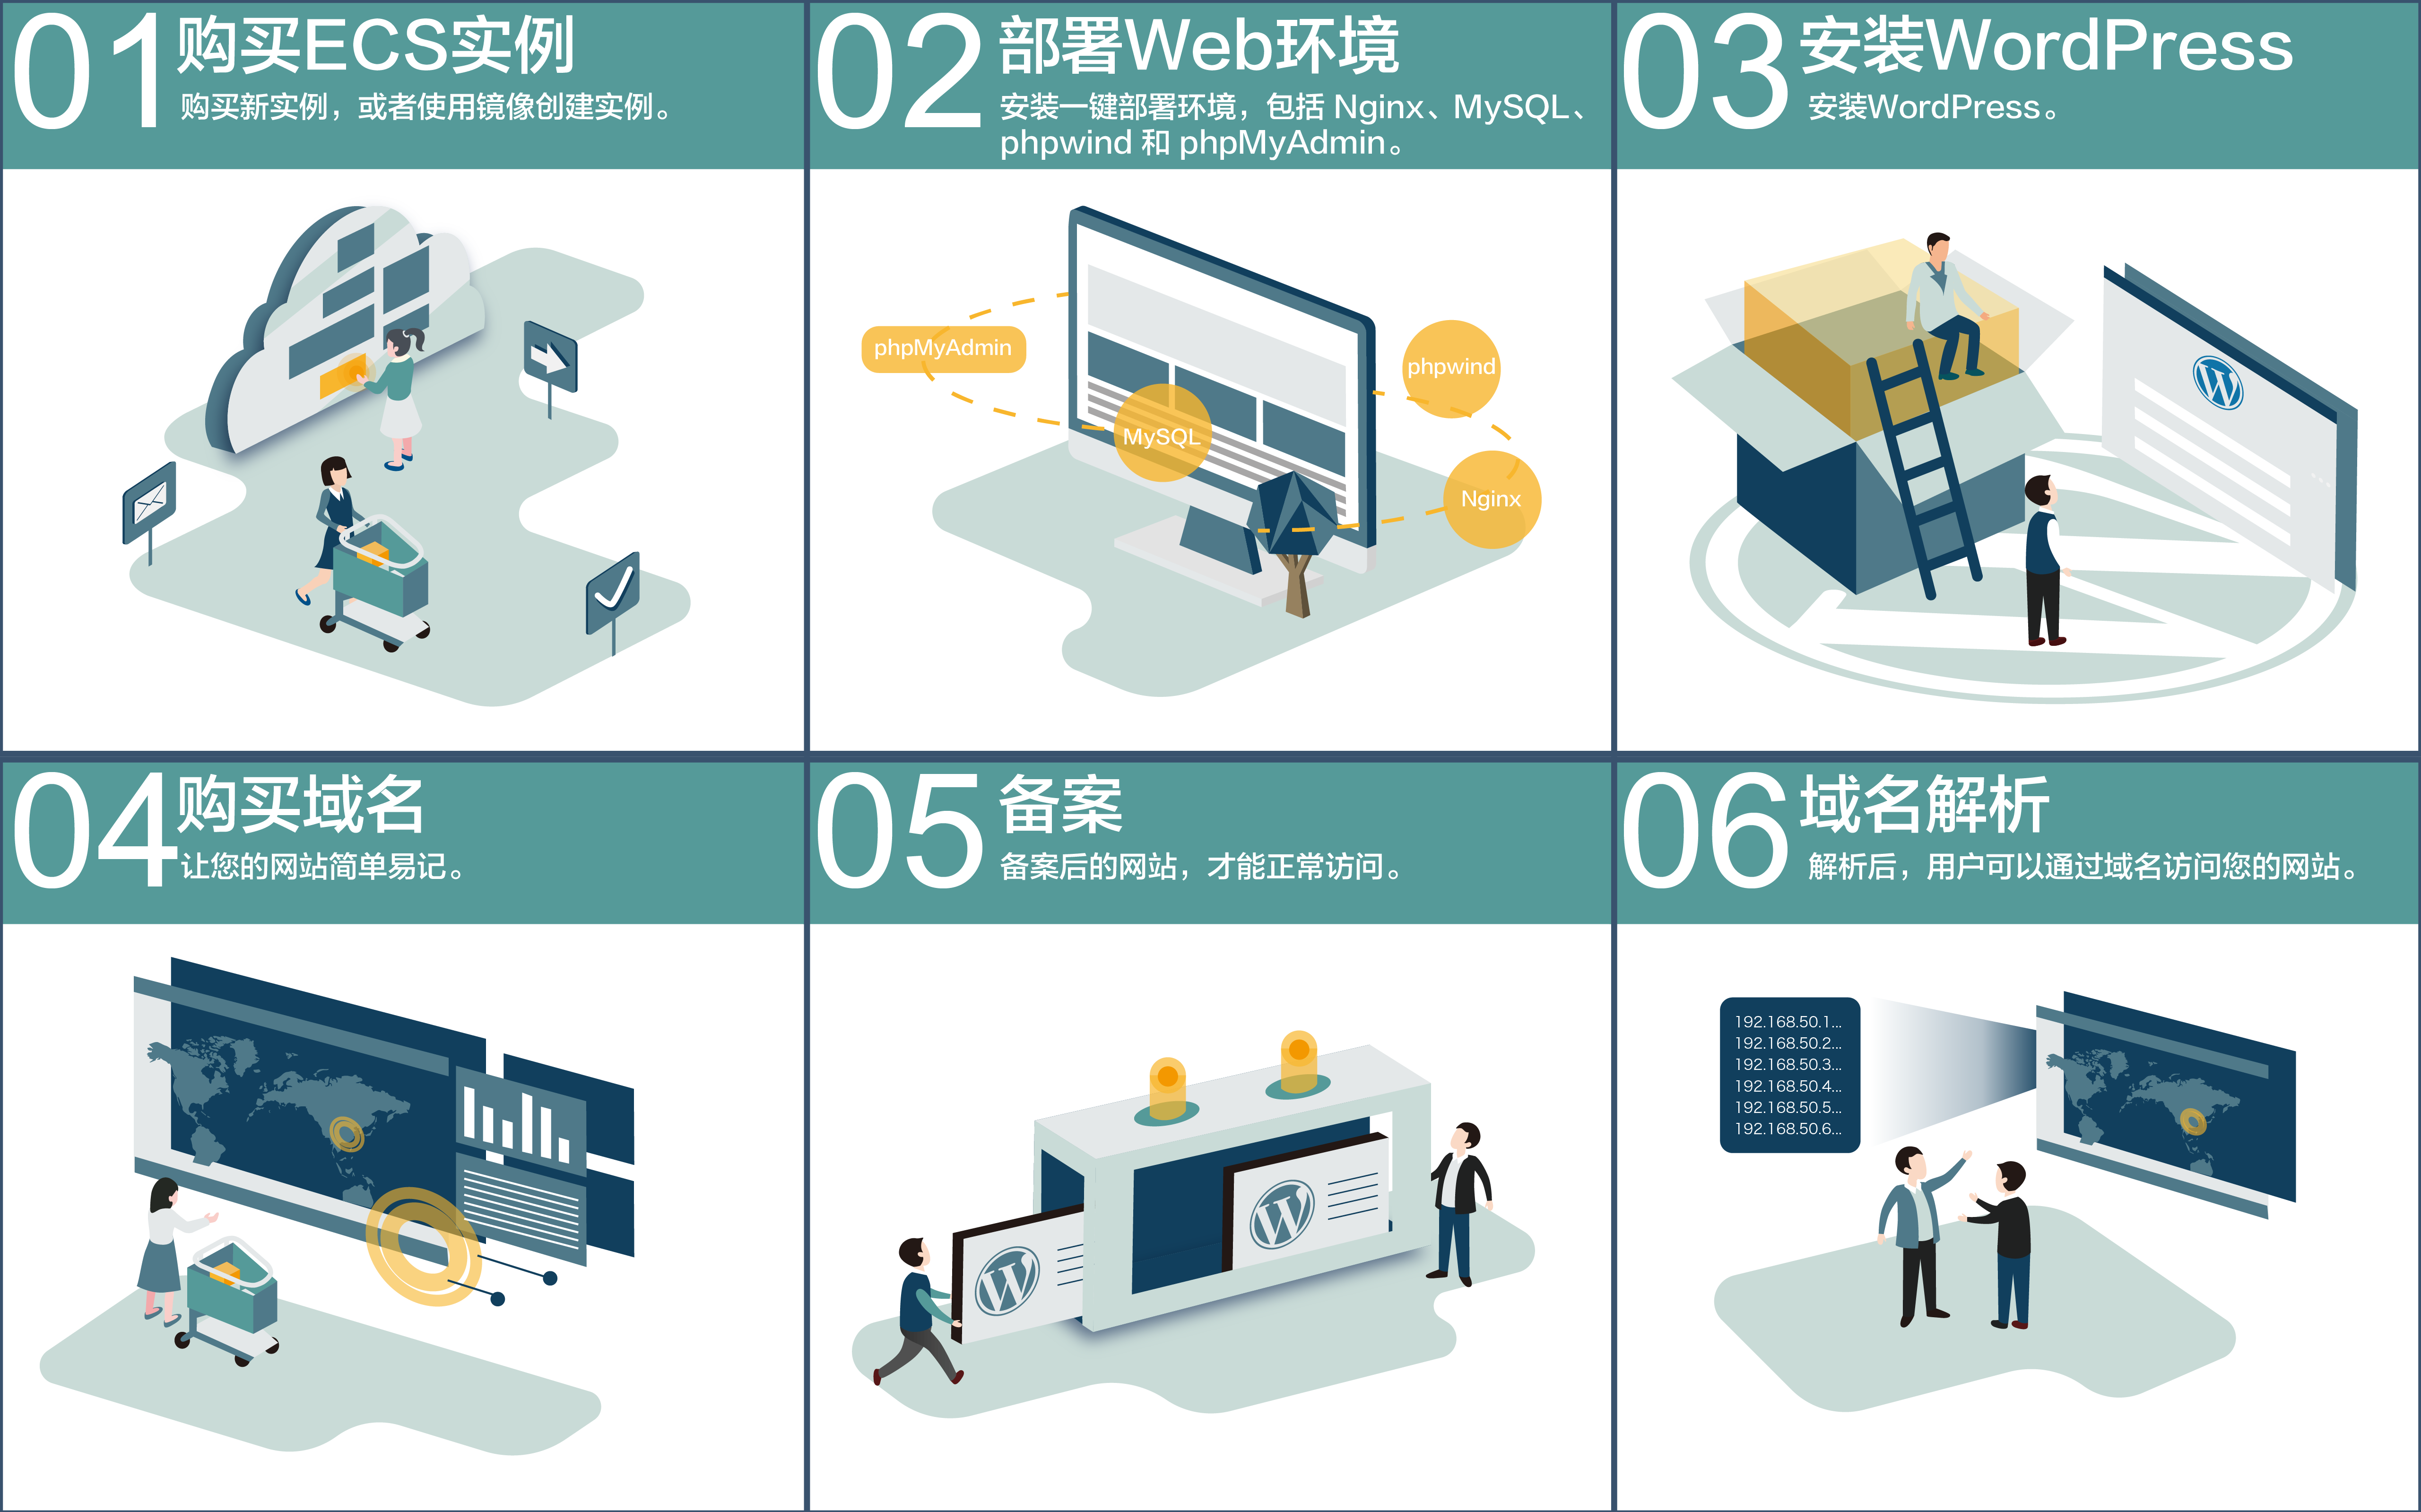 搭建WordPress流程图